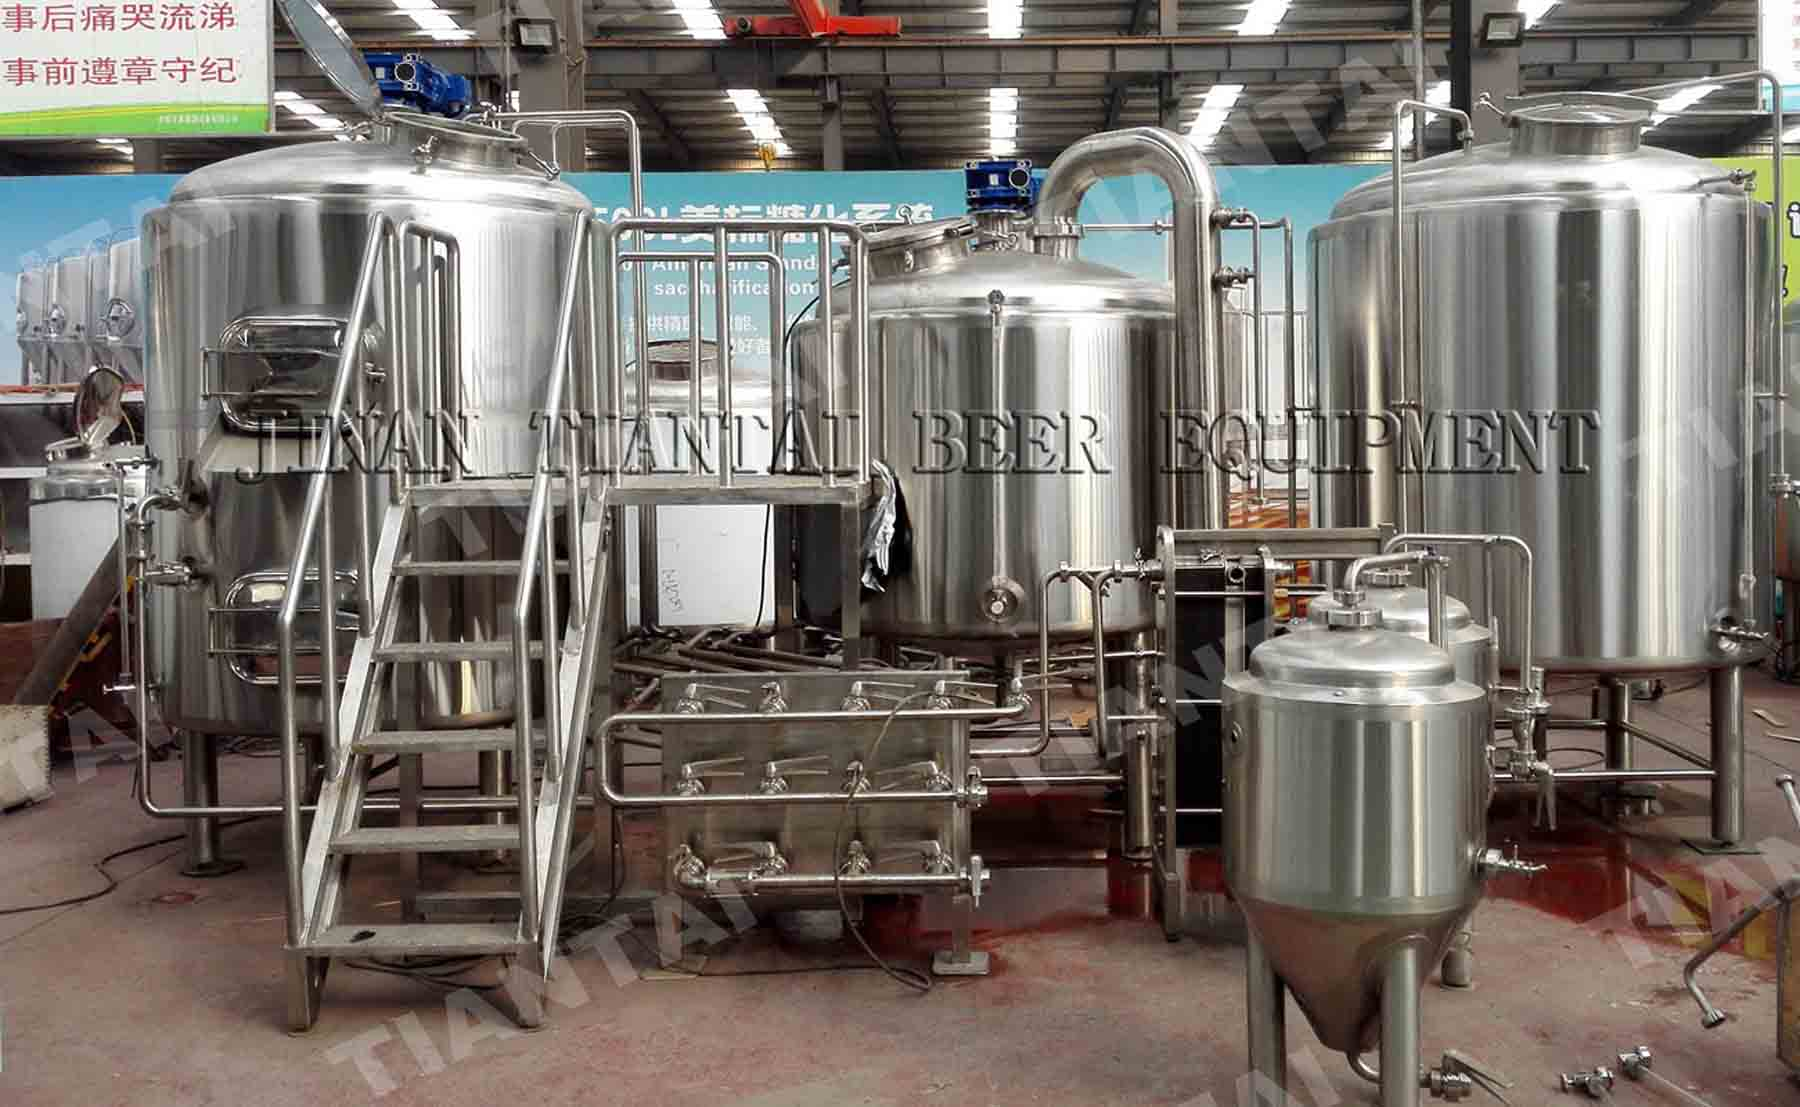 Beer Equipment For Sale Chinese Beer Equipment